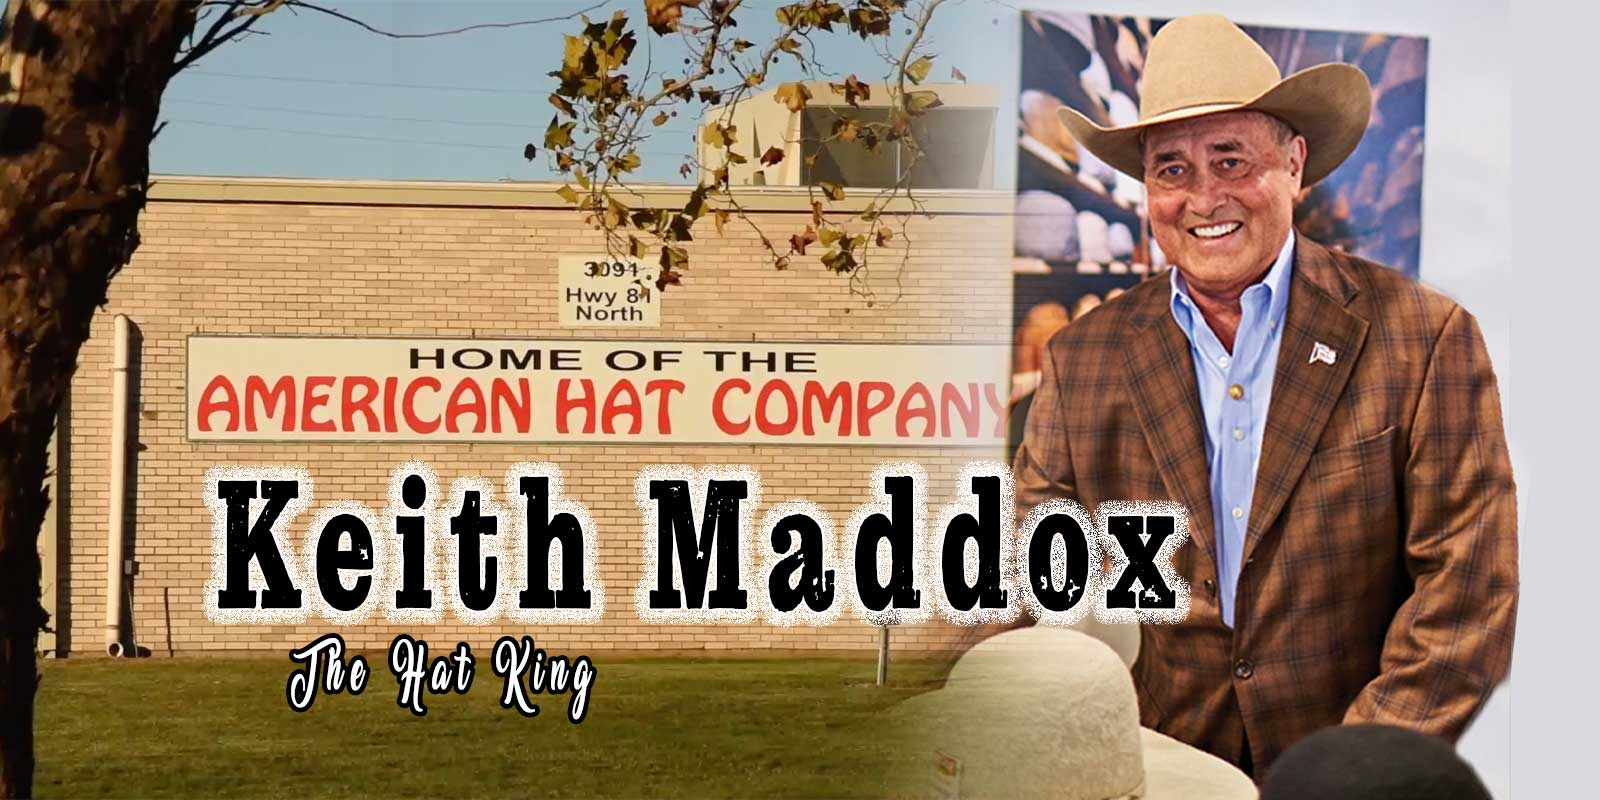 Keith Maddox american hat company